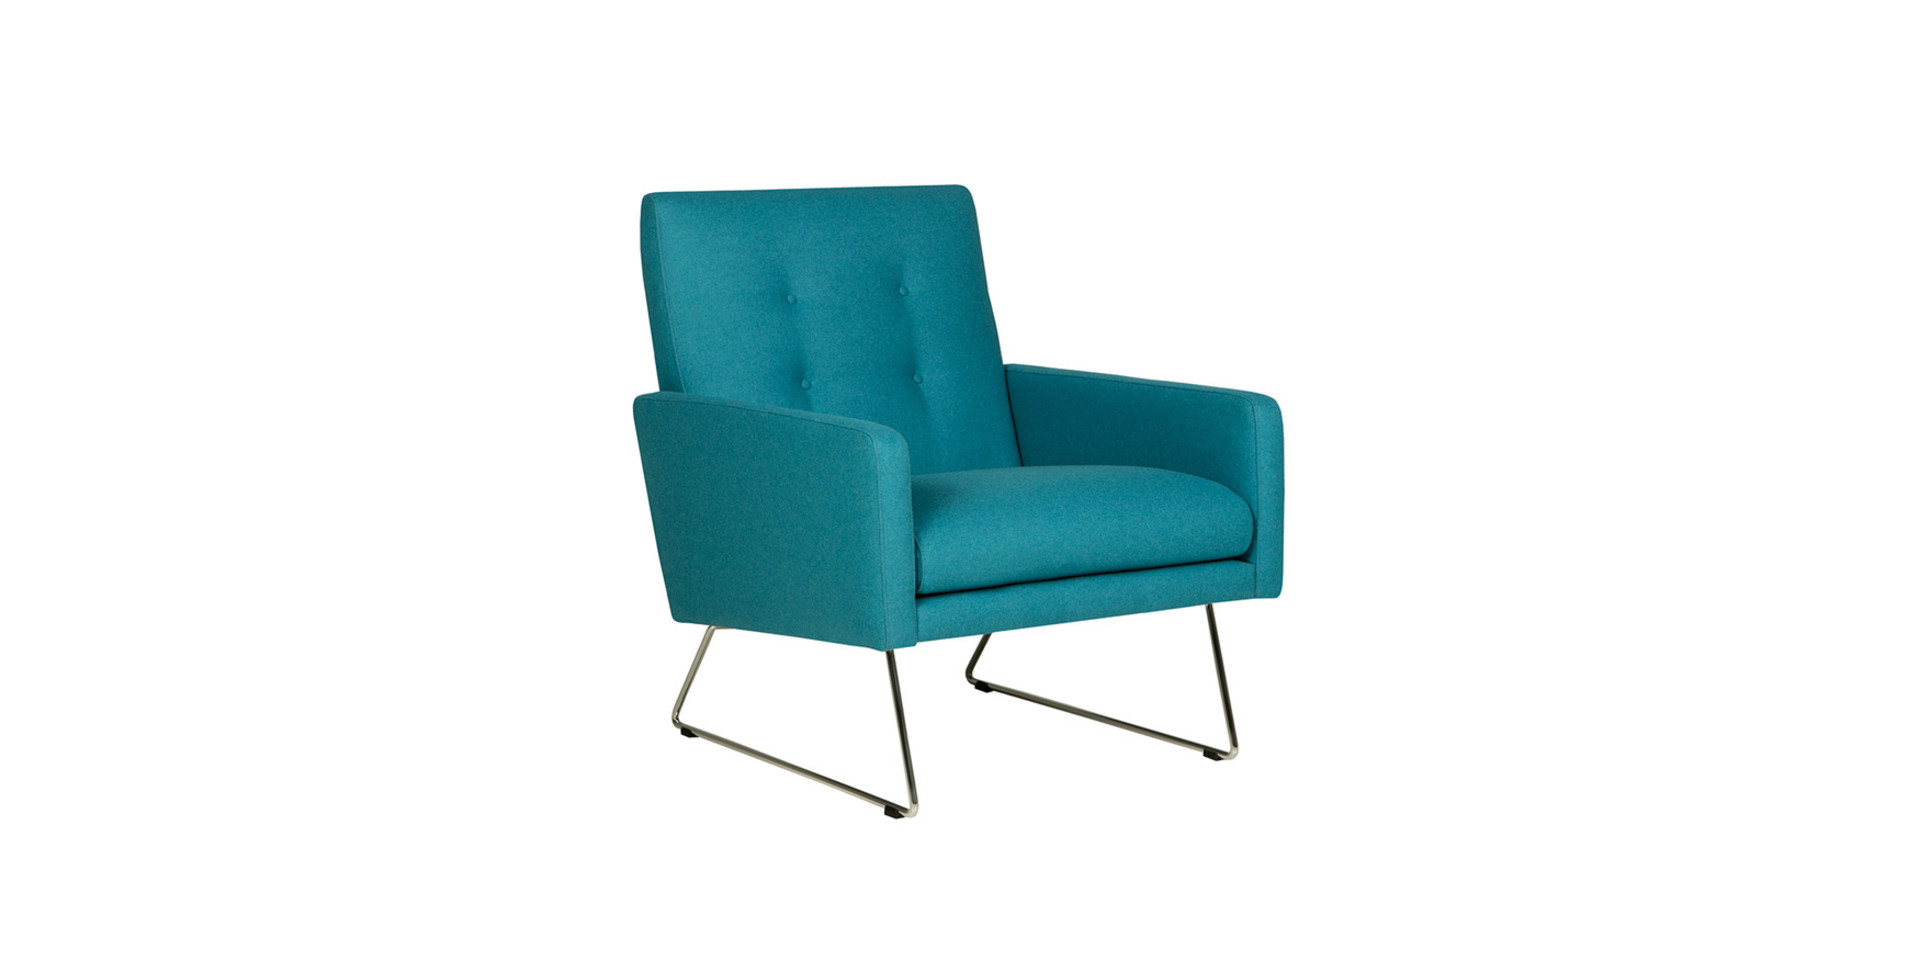 sits-max-fauteuil-armchair_buttons_panno2240_turquoise_2